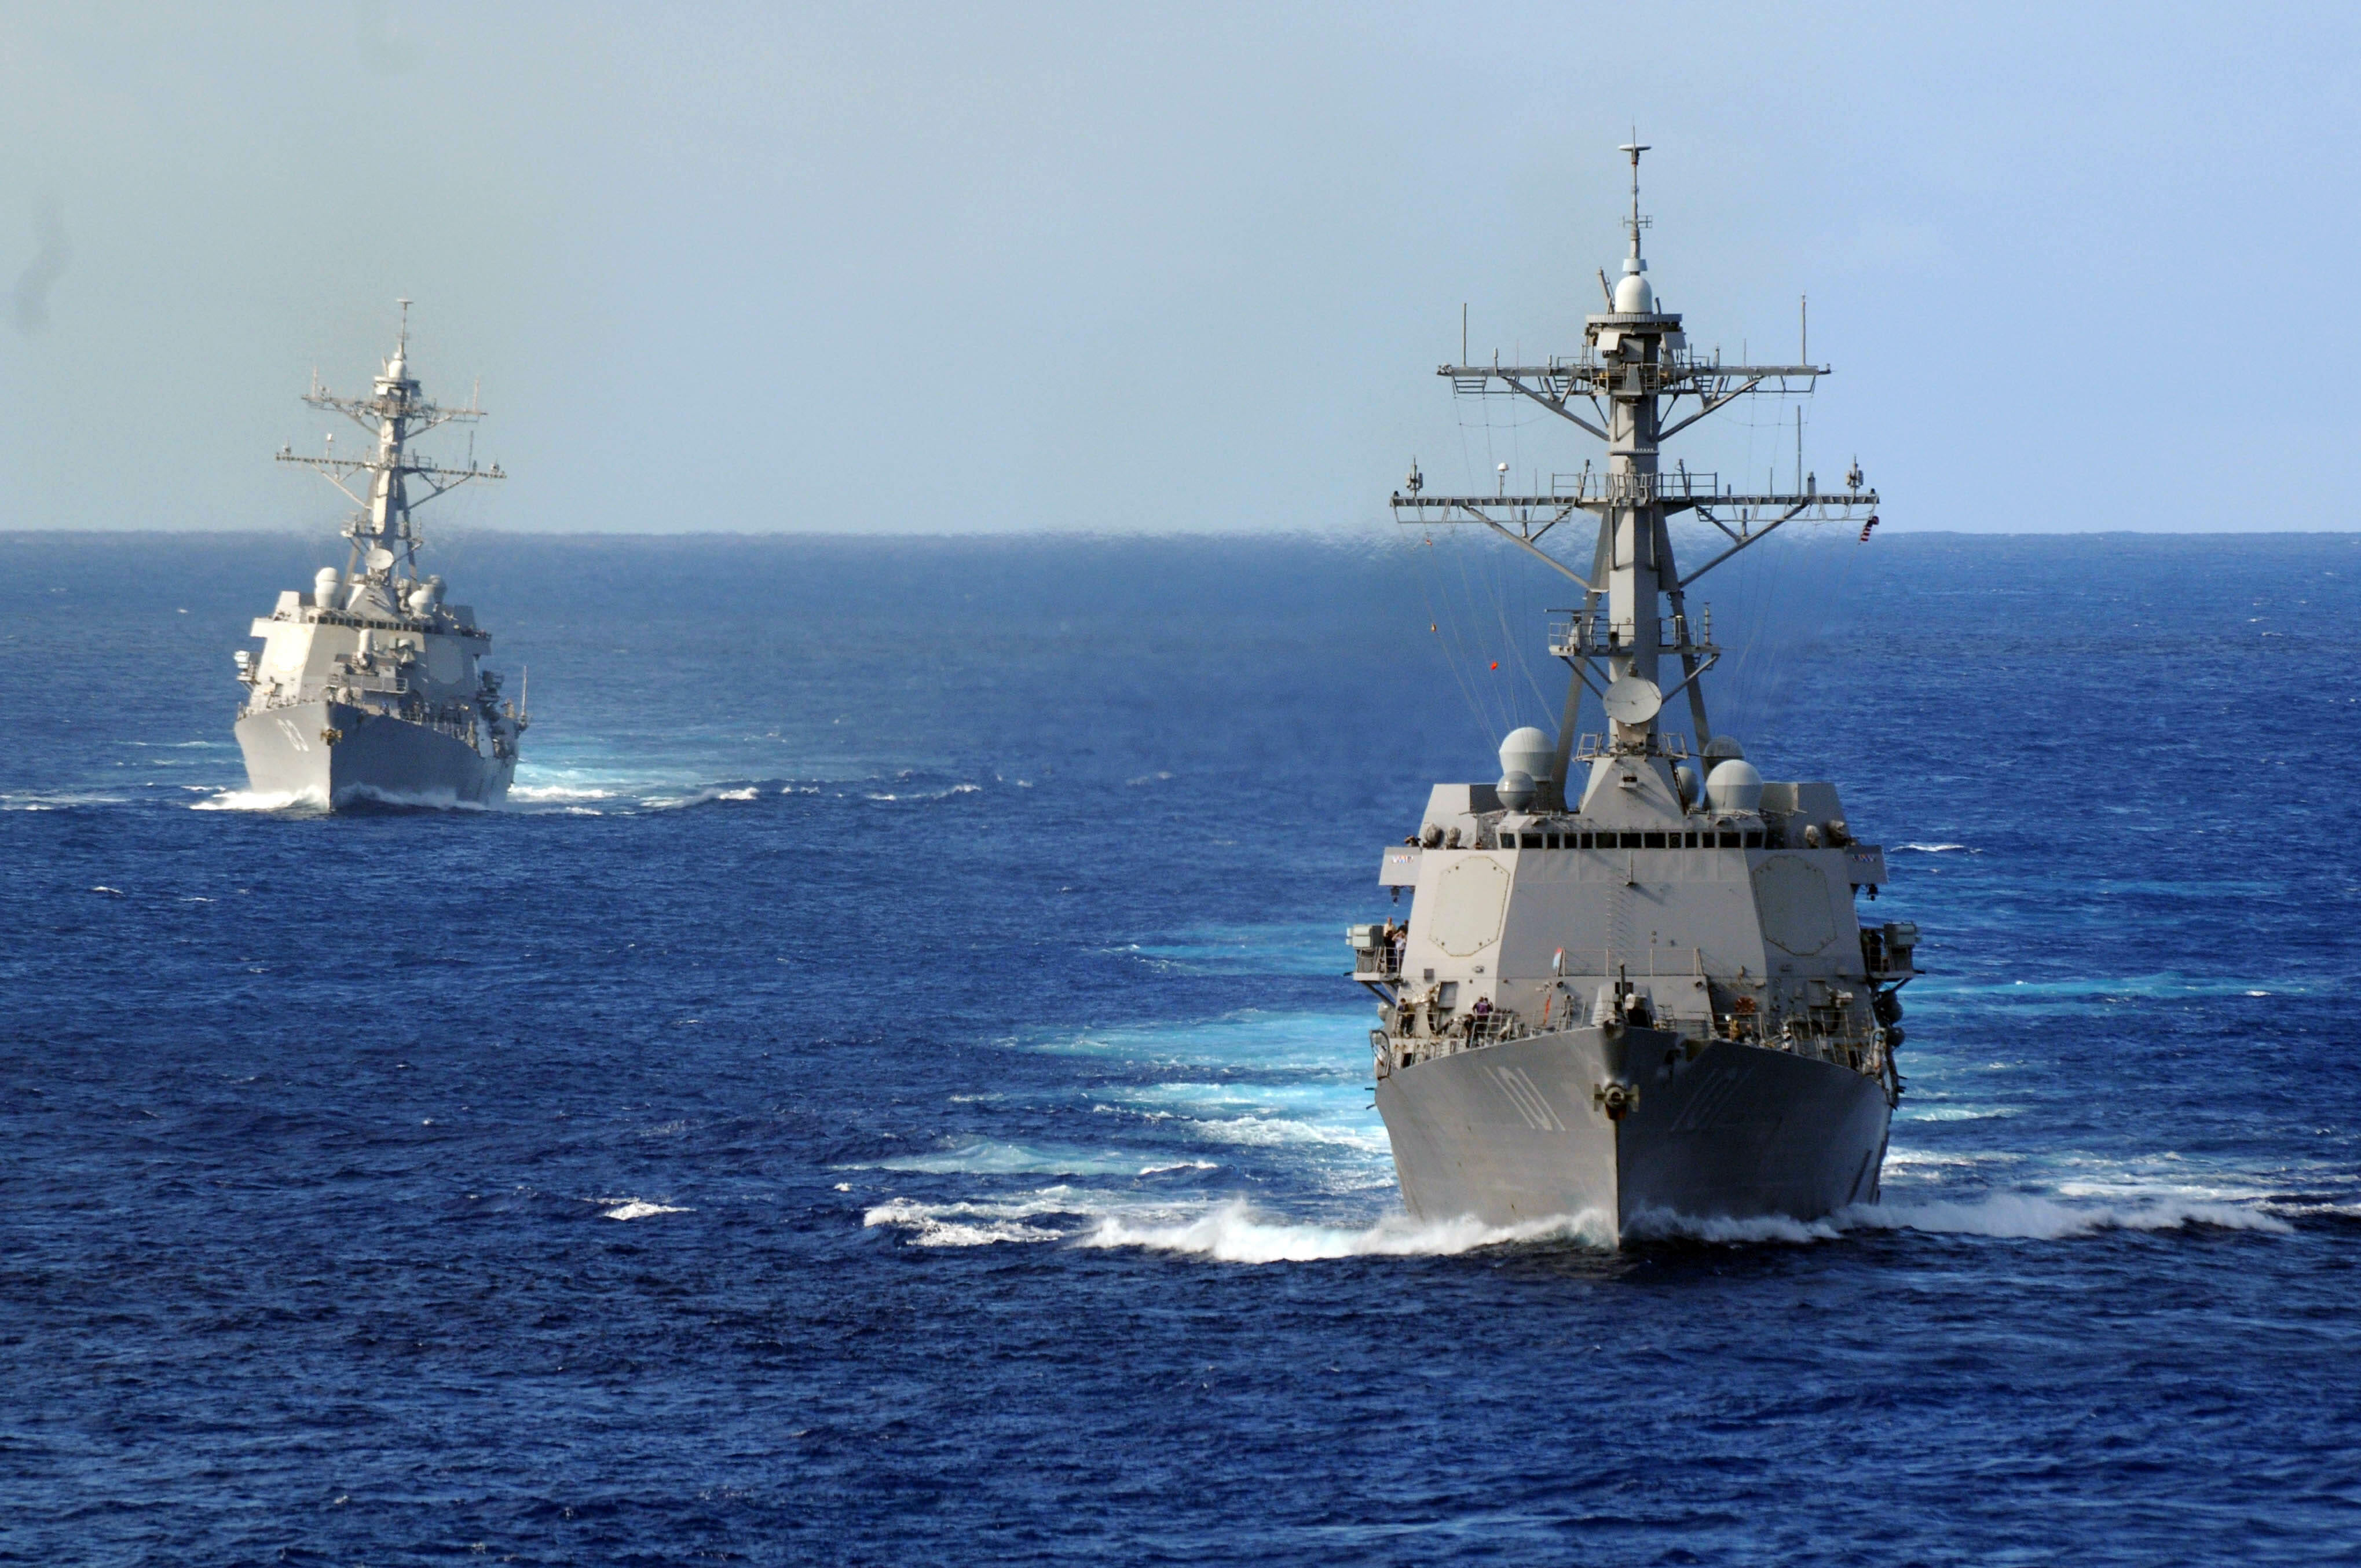 U.S. Ready to Retaliate if North Korea Tests Device – 2 Navy Destroyers Capable of Shooting Tomahawk Missiles in Position